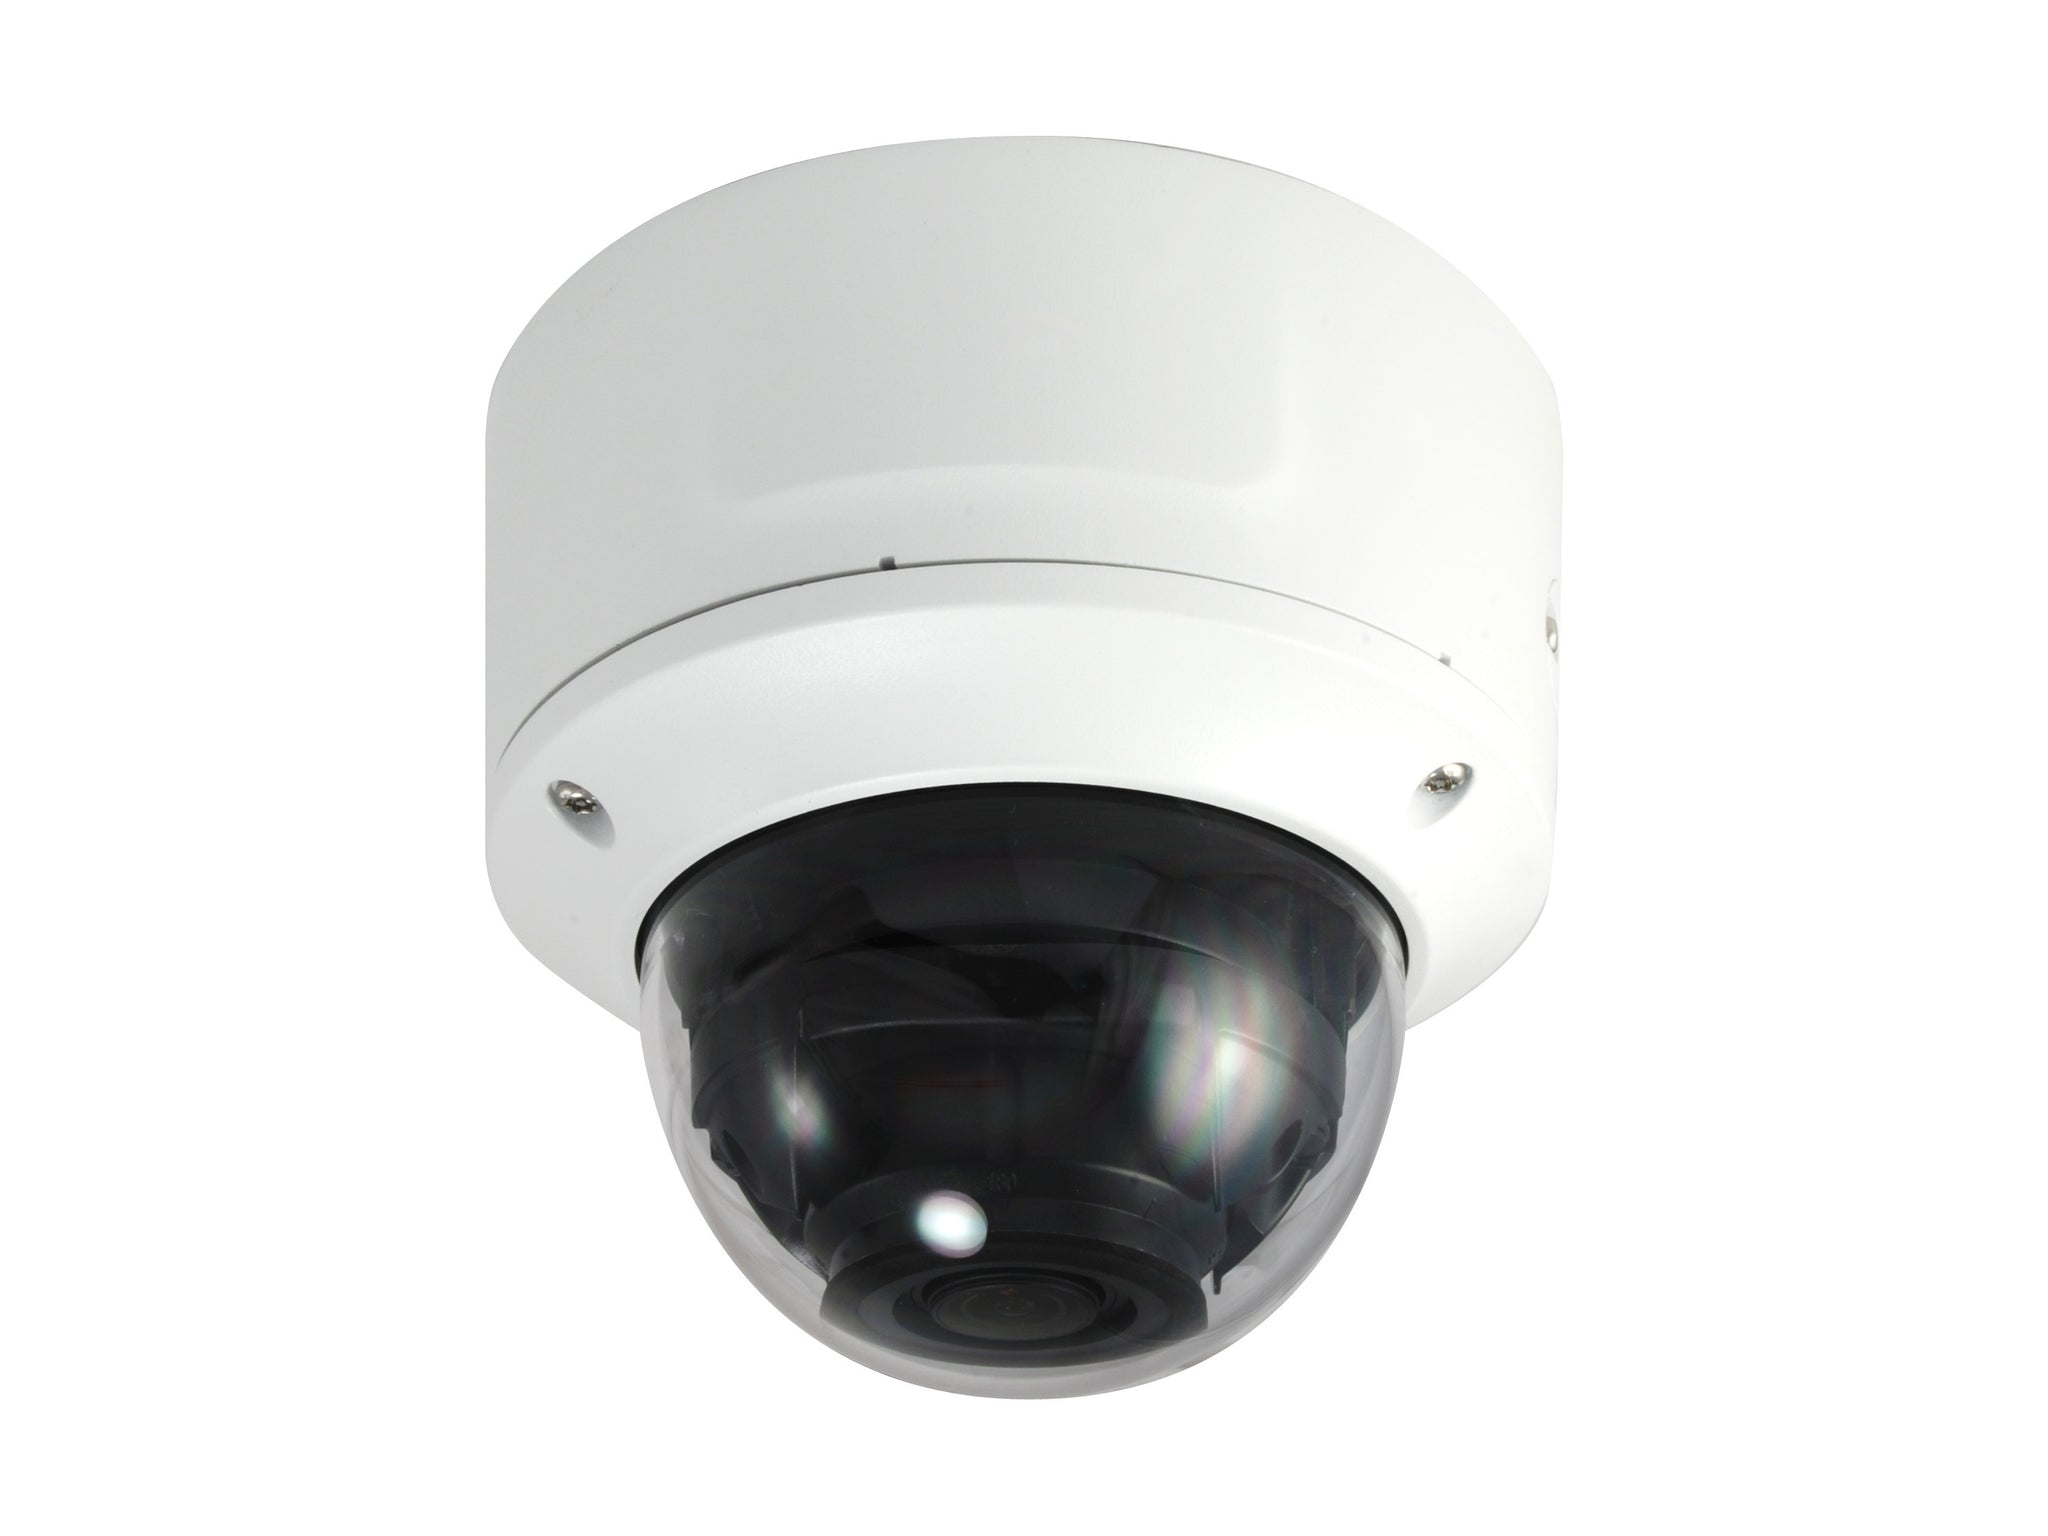 FCS-3097 Fixed Dome IP Network Camera, 5-Megapixel, H.265/264, 802.3af PoE